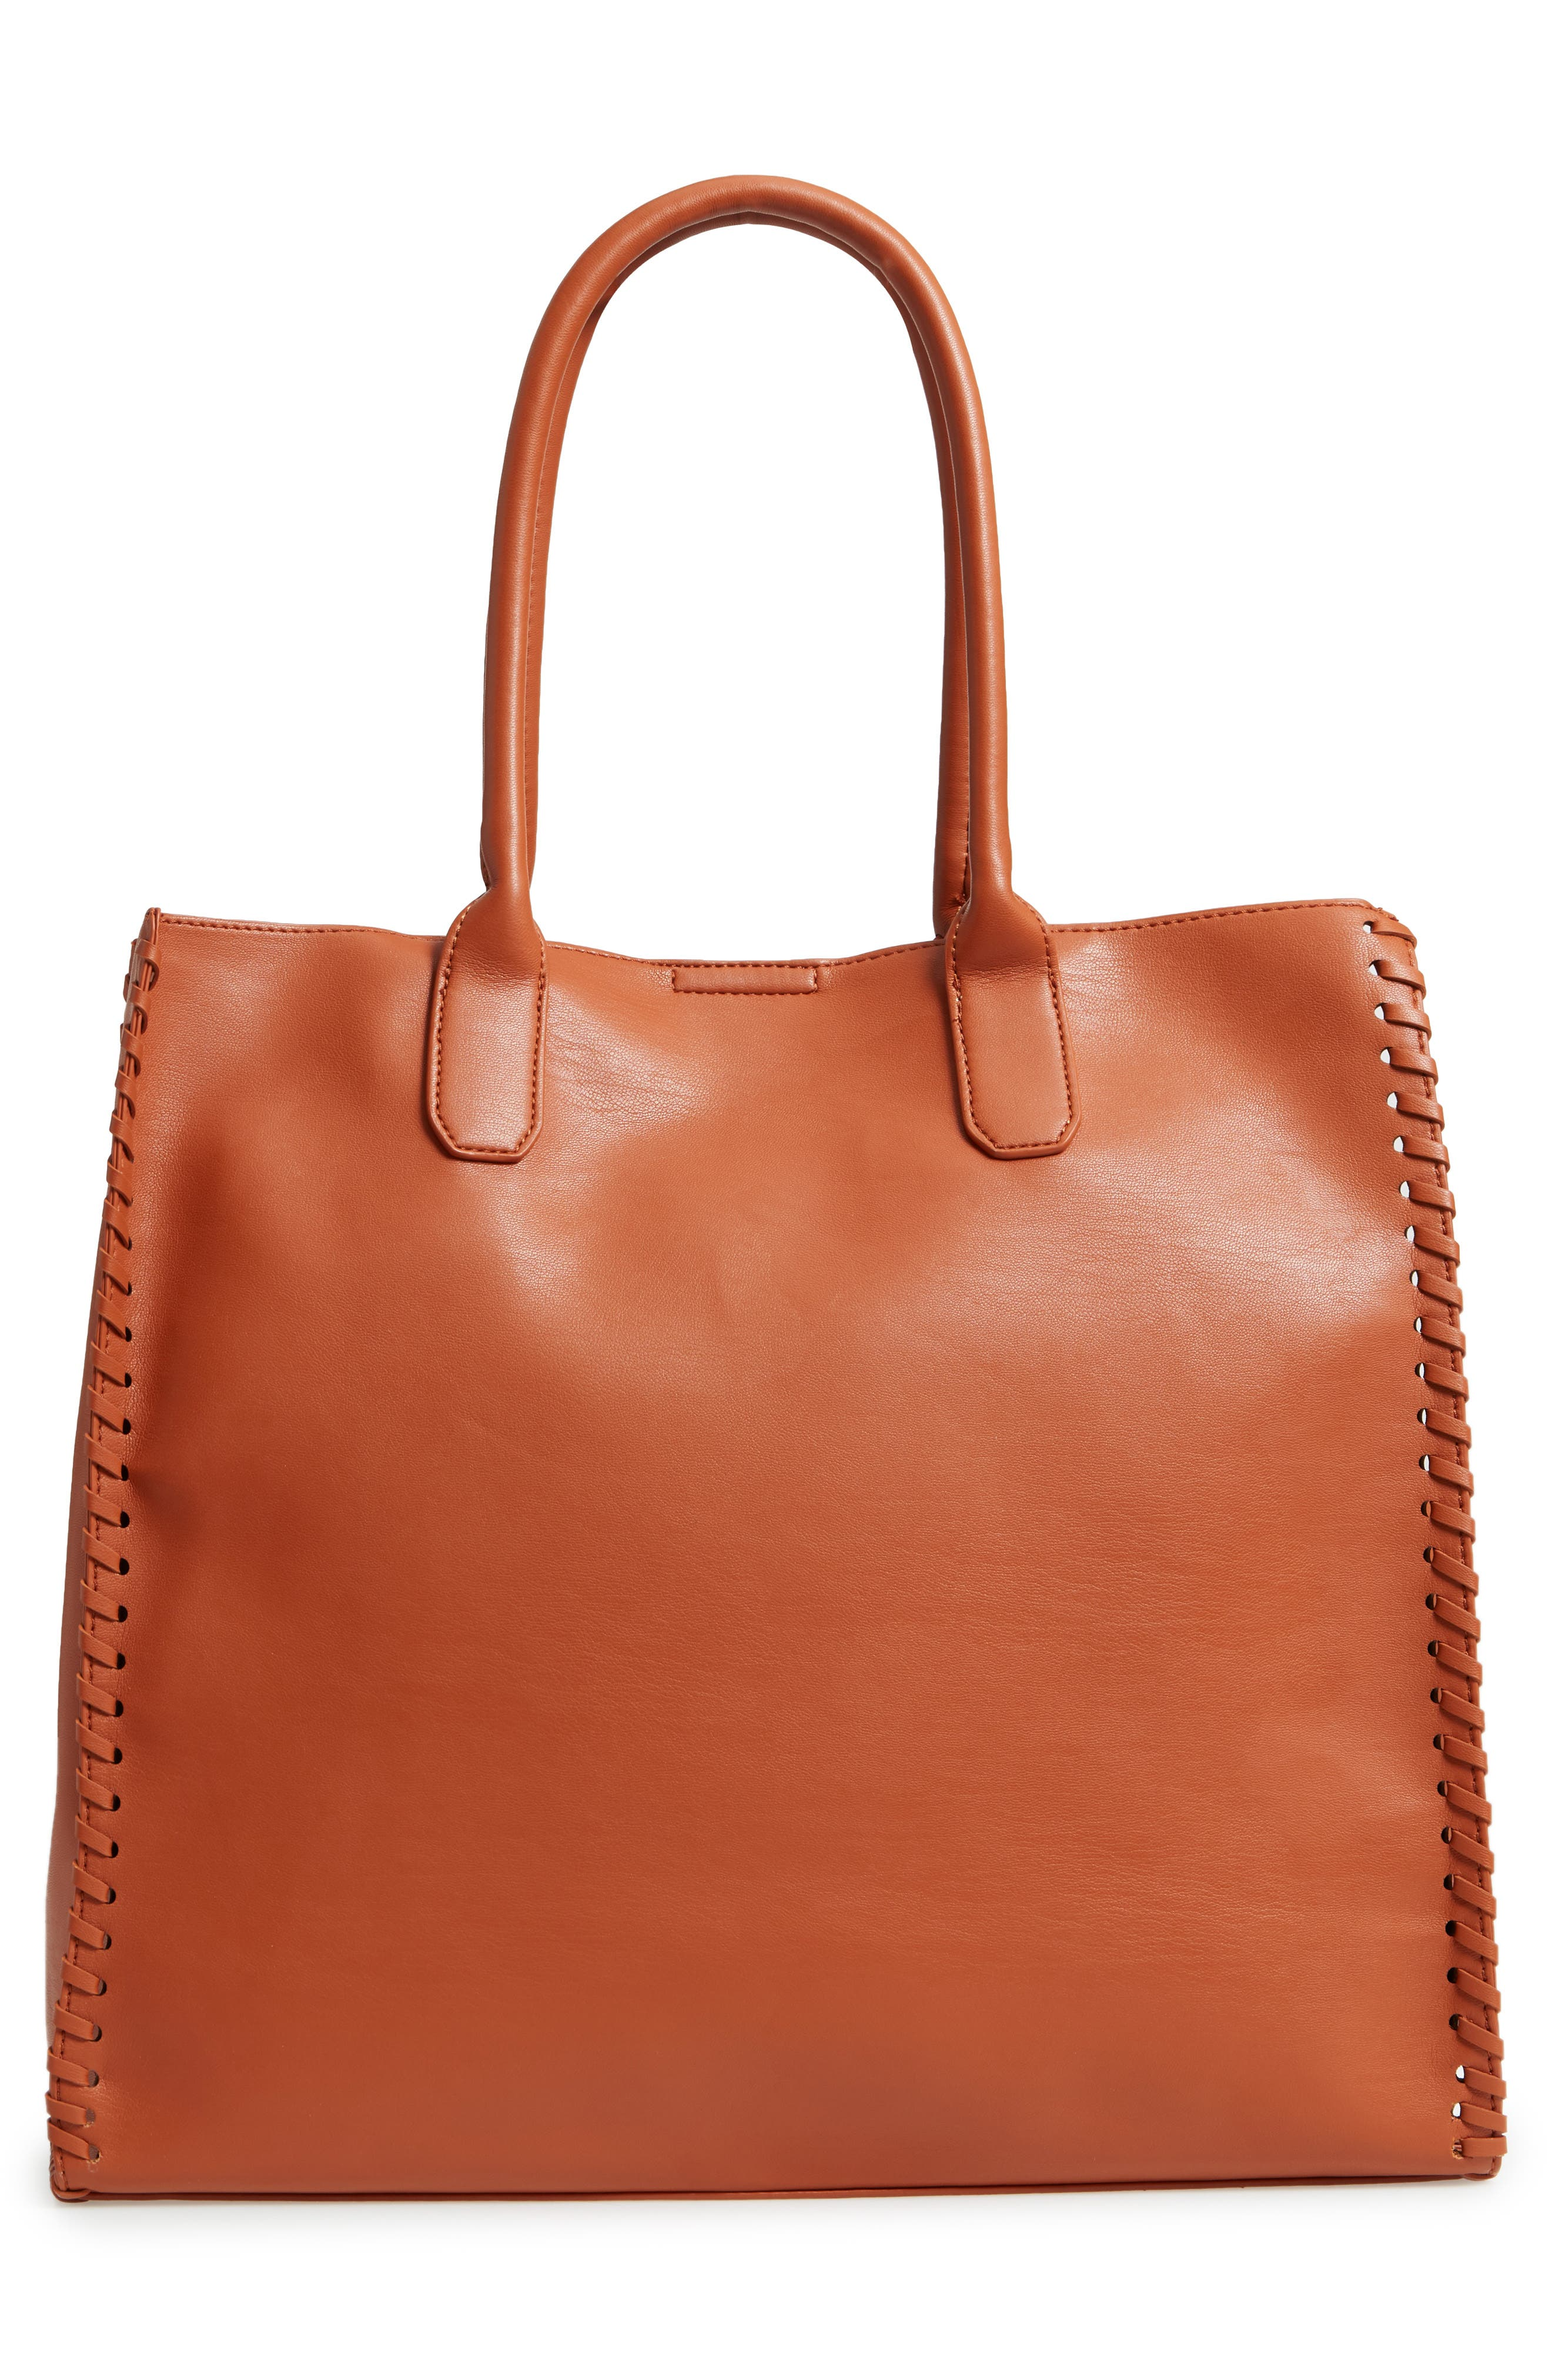 Cadence Faux Leather Whipstitch Tote,                             Alternate thumbnail 3, color,                             200